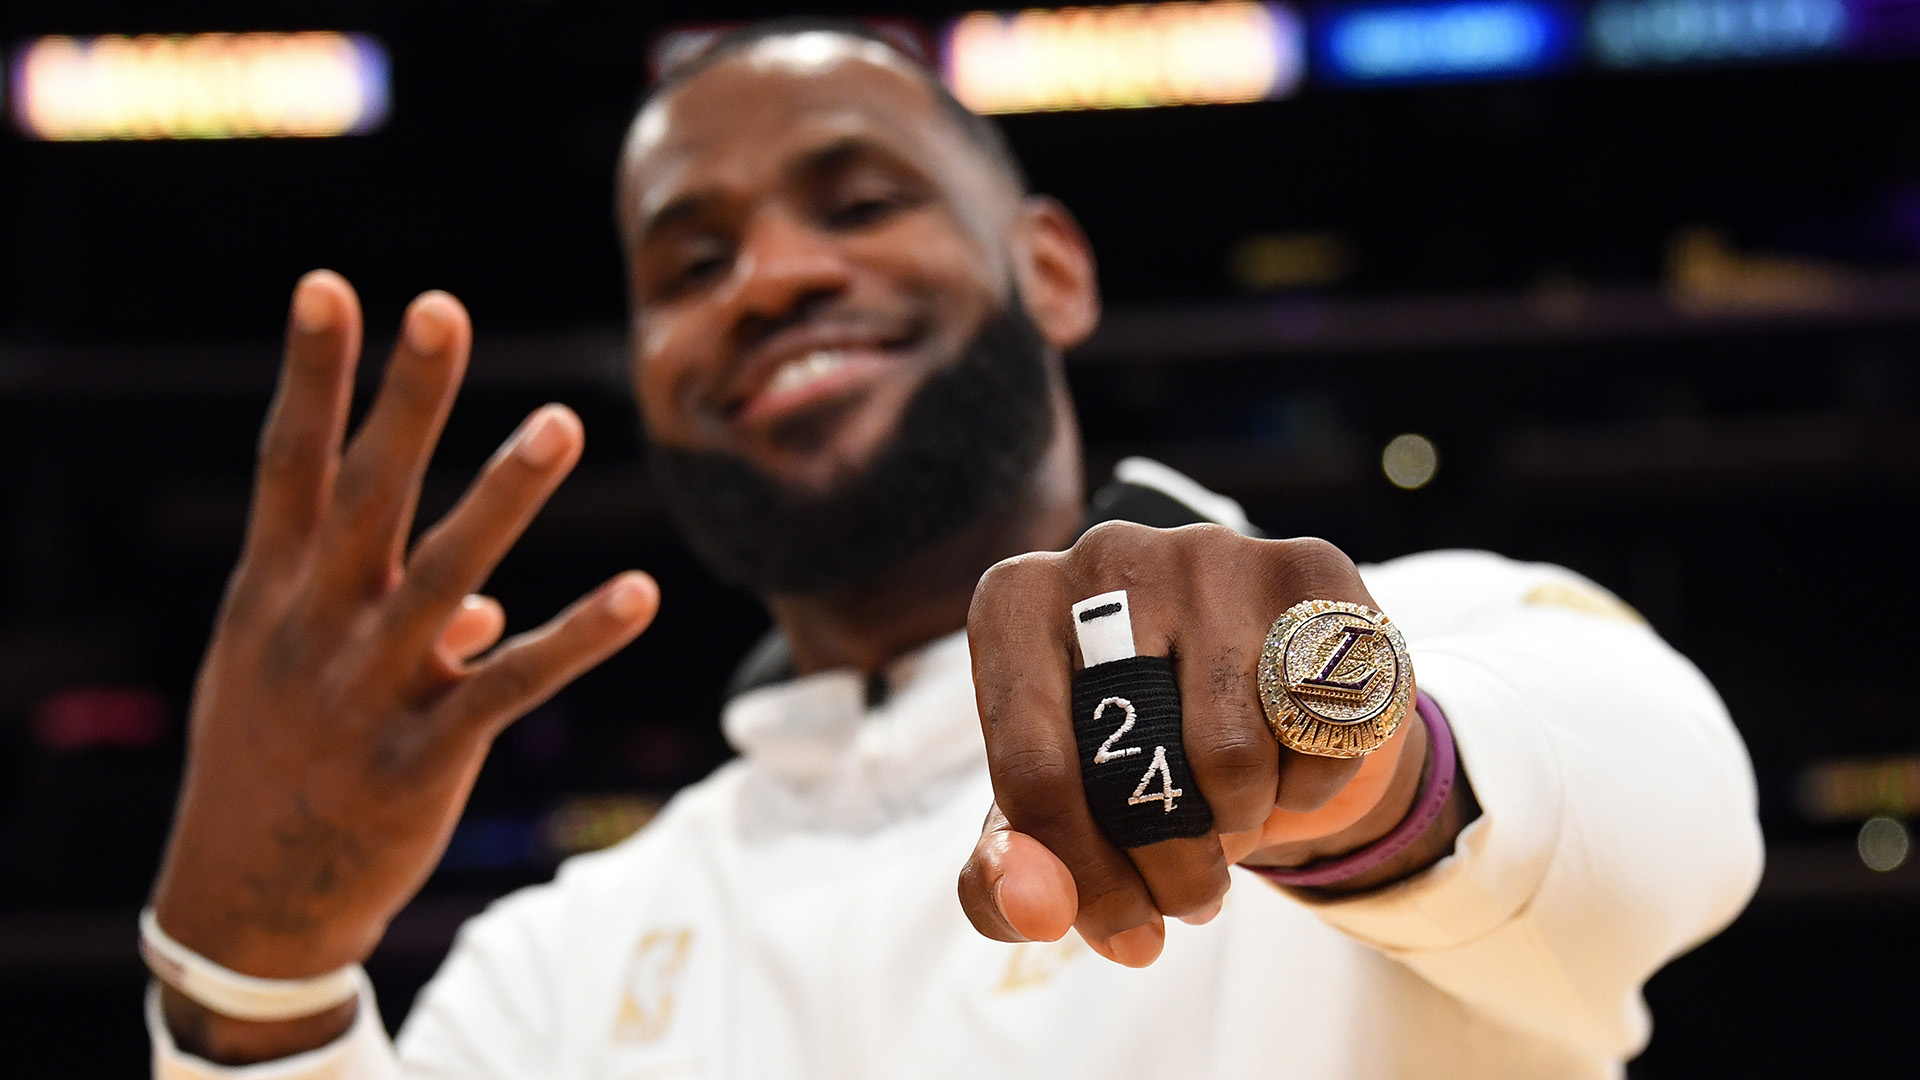 Lakers get their rings, and opening loss doesn't ruin the moment